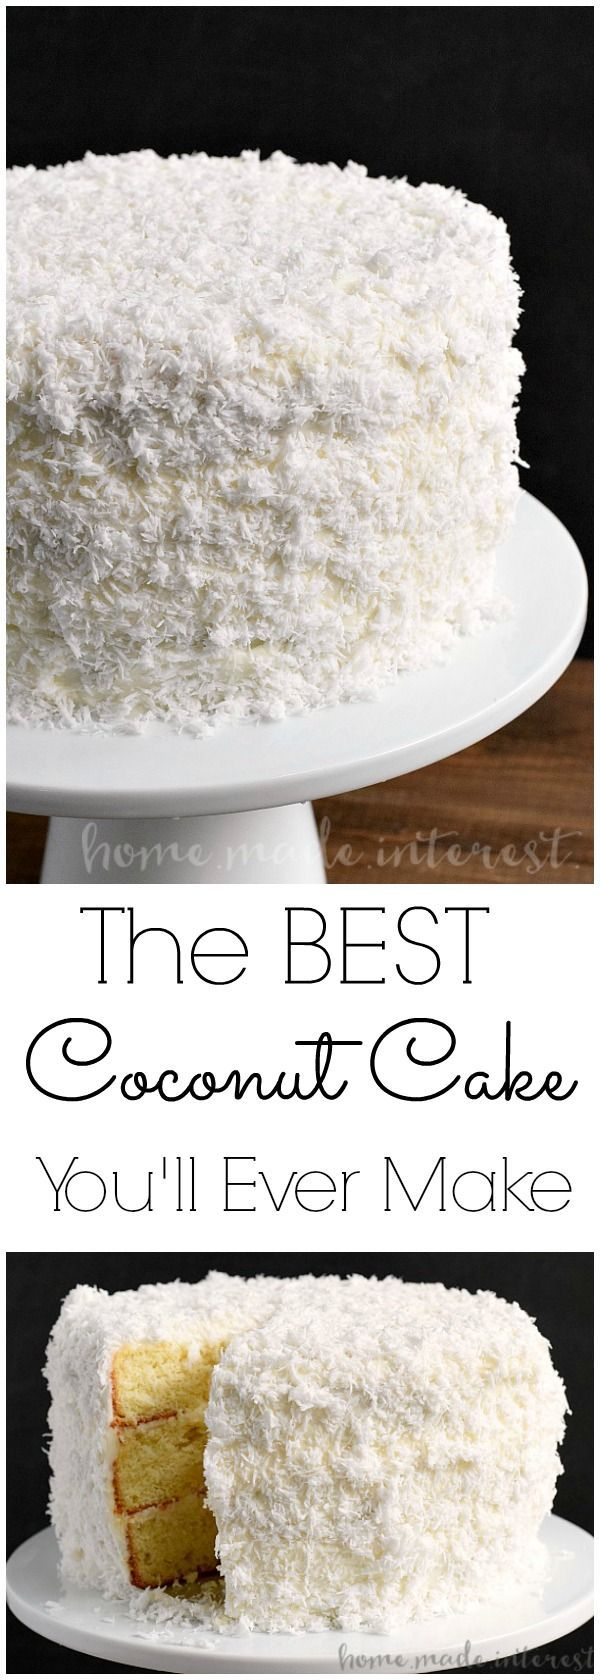 Coconut Cake | This is the best coconut cake recipe I've ever made. This easy coconut cake recipe is moist and delicious and uses fresh coconut! This traditional southern recipe is a delicious coconut cake that makes a perfect Easter dessert, Christmas dessert, or just an amazing cake for a party! This three layer coconut cake is beautiful and delicious!